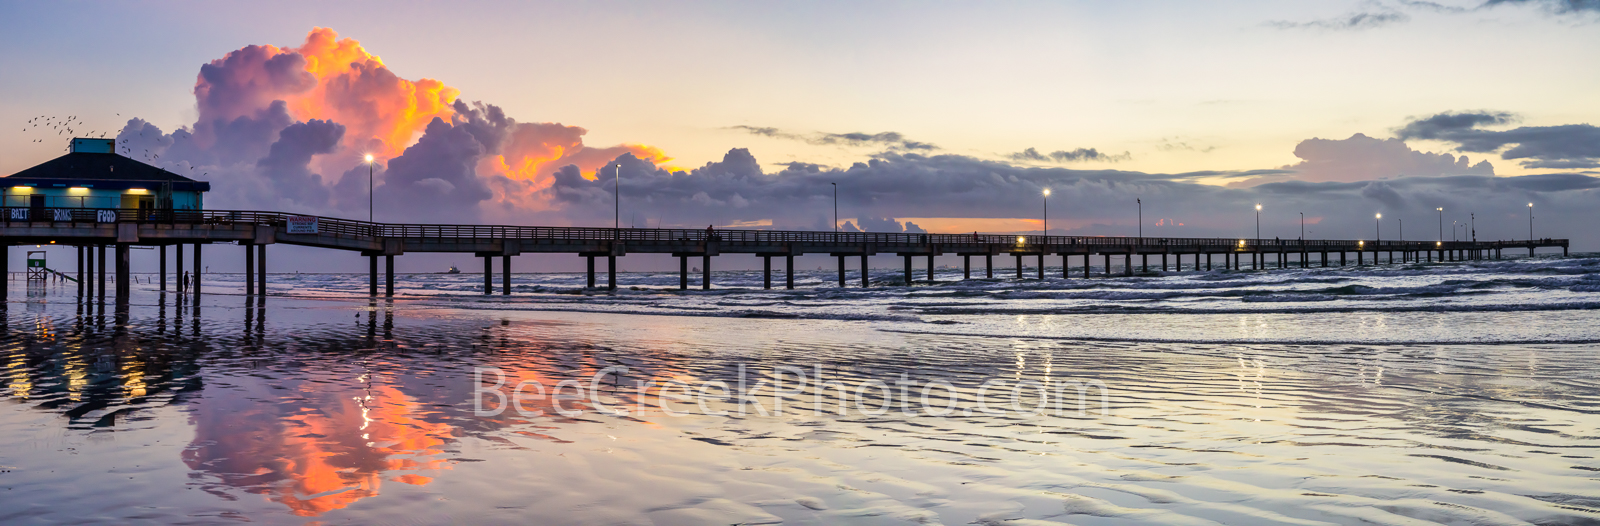 texas, port aransas, tx, pier, caldwell pier, texas coast, gulf of mexico, sunrise, sunset, port a, pelicans, clouds, orange, pink, color, beach, fishing, dawn, tide, surf, central texas coast, reflec, photo